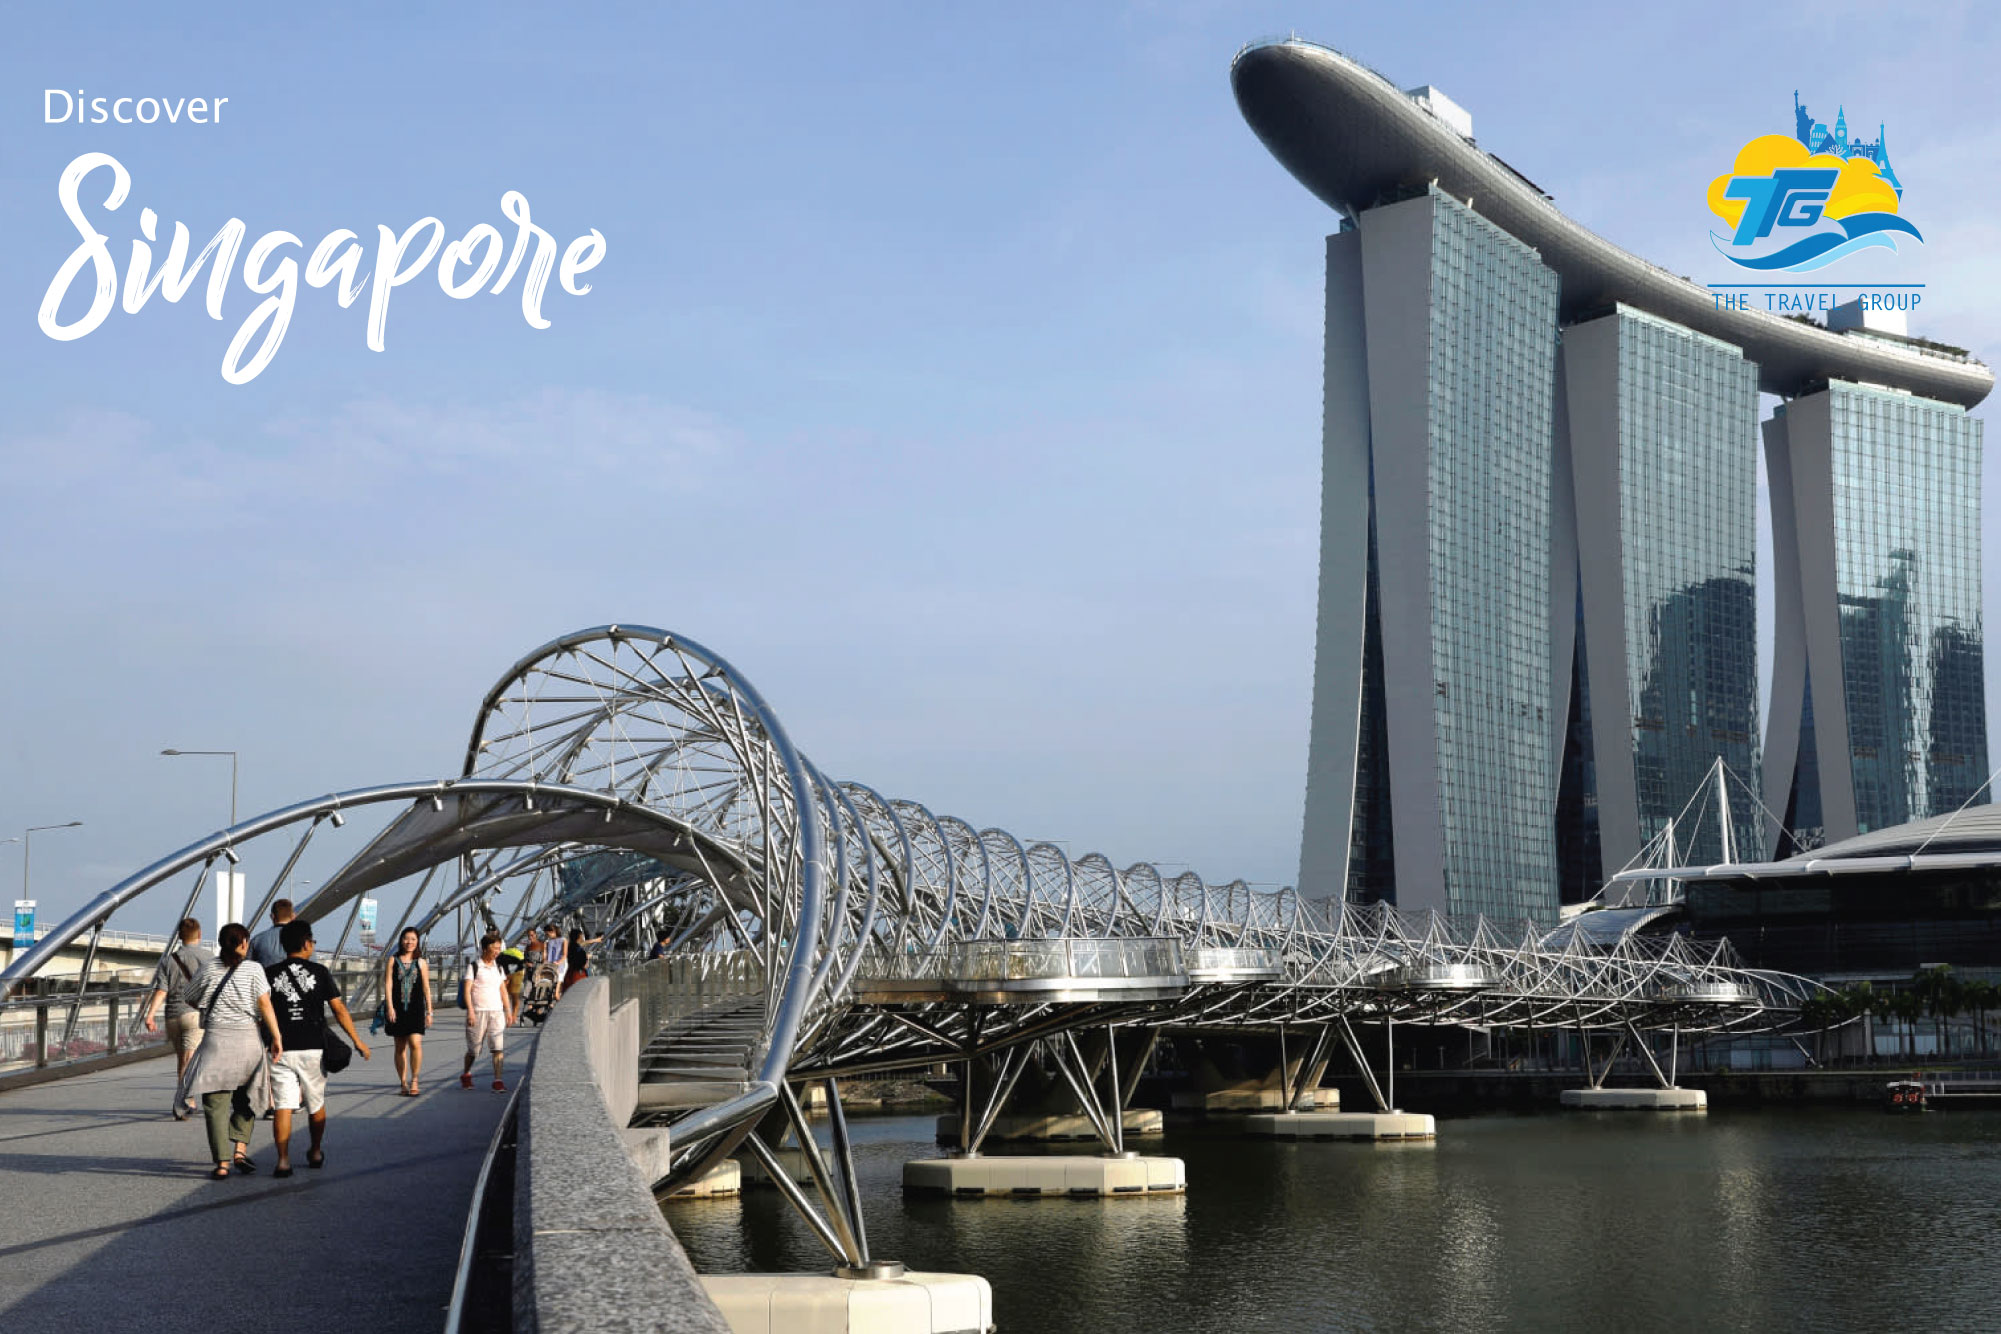 Offer & Packages for Singapore